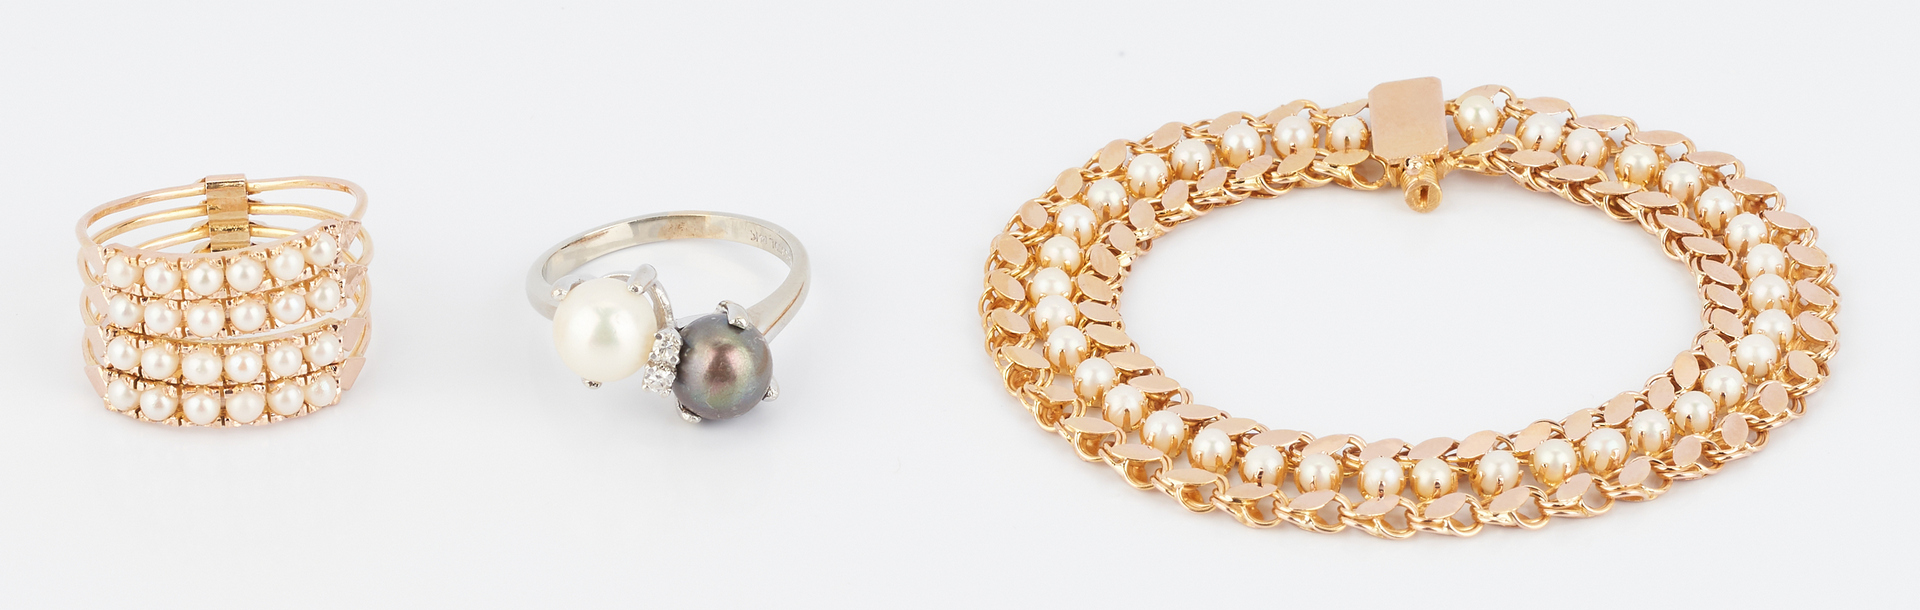 Lot 854: 3 Ladies Pearl & Gold Jewelry Items